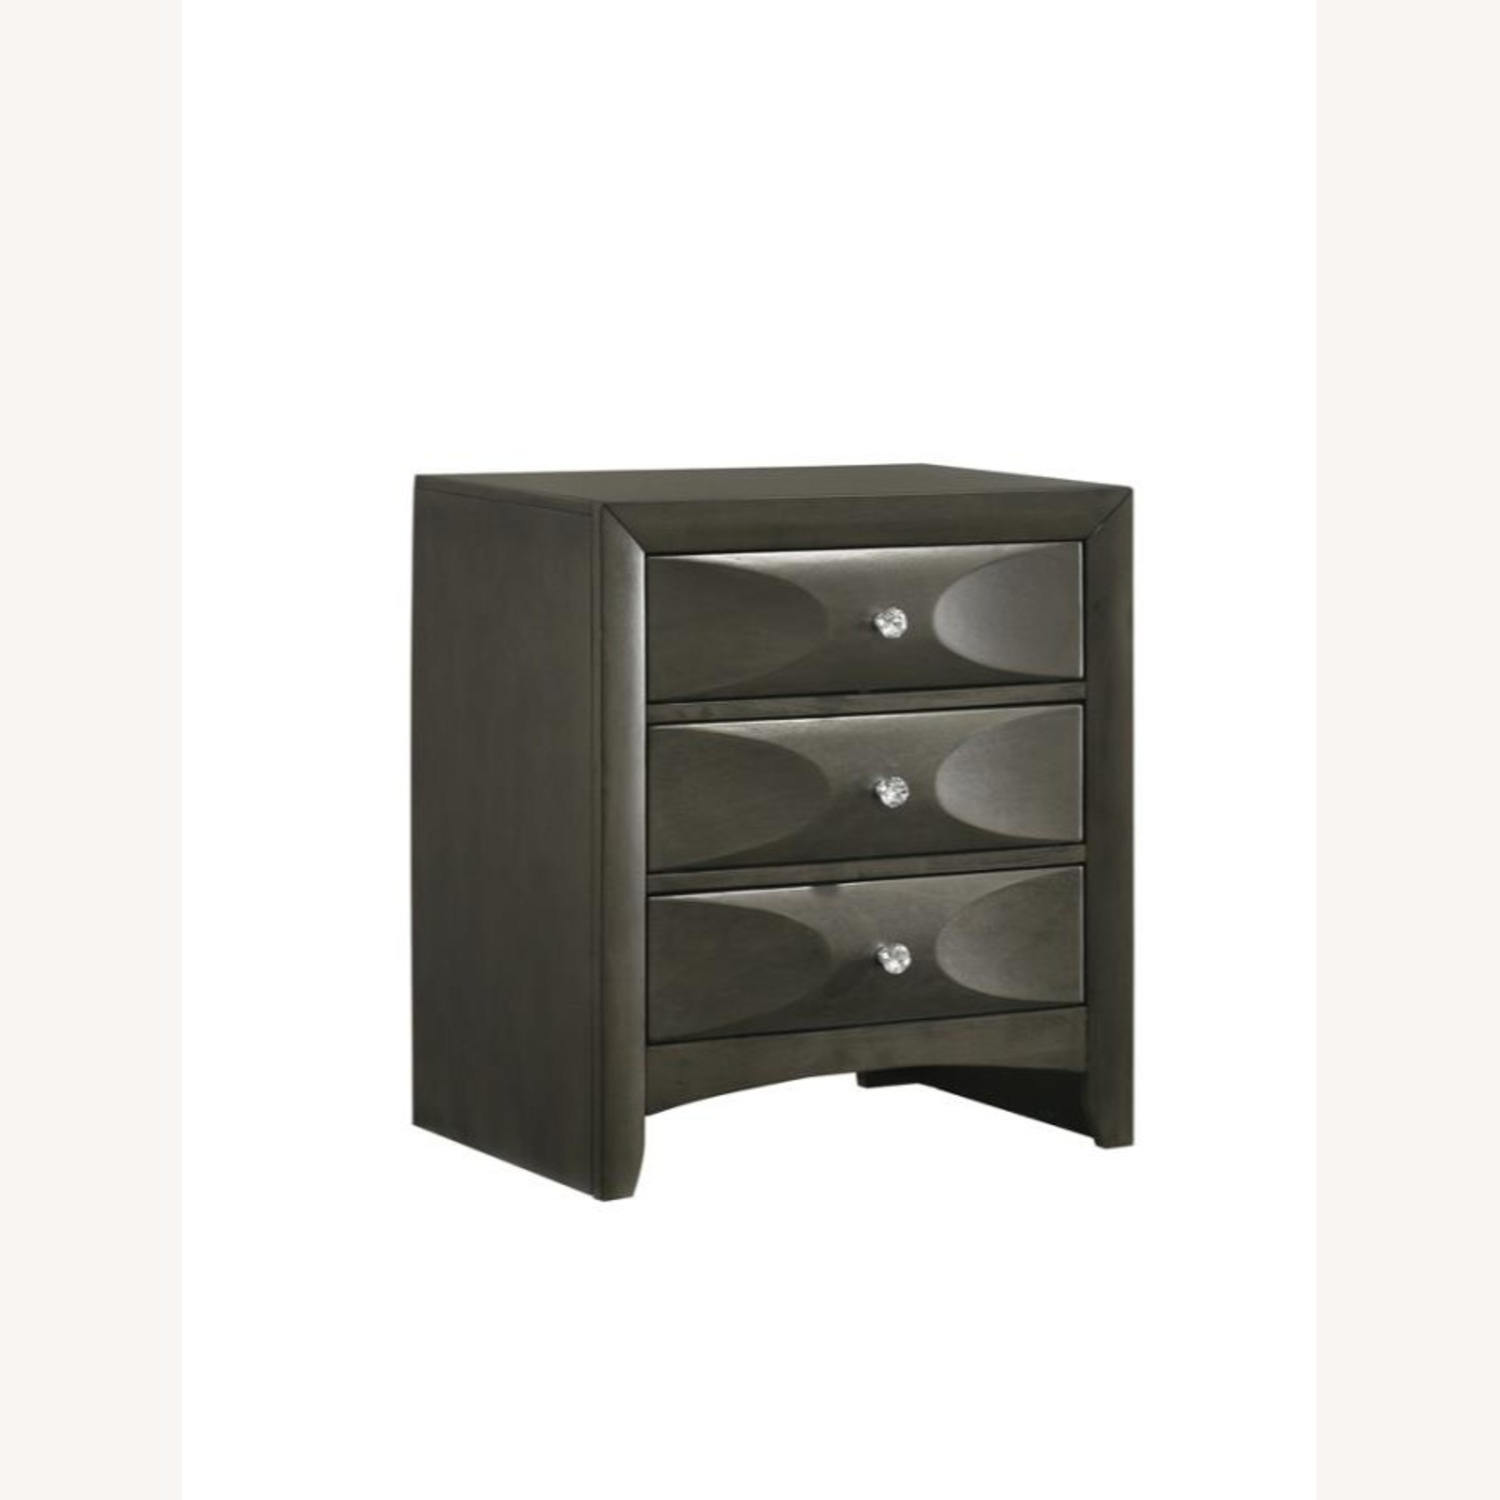 Nightstand In Mod Grey Finish W/ 3D Bow Tie Fronts - image-0